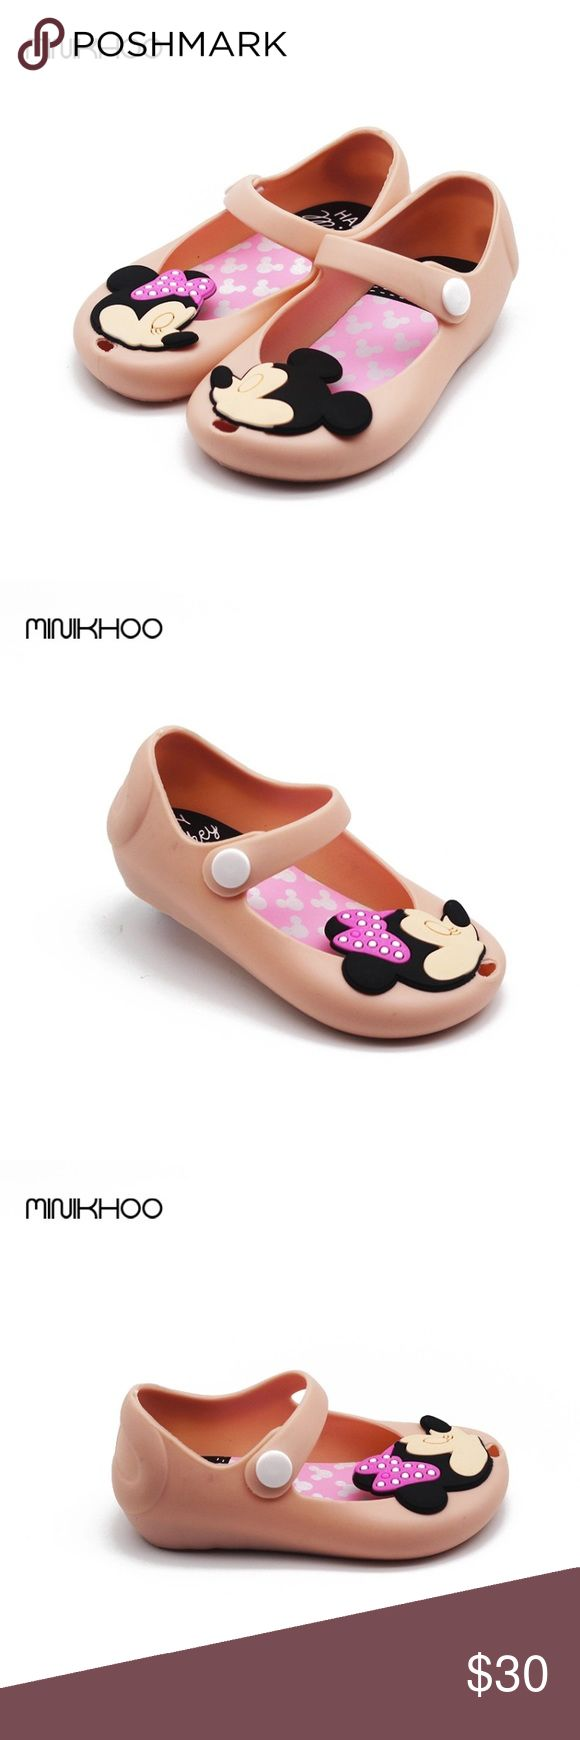 🎉🎉Hp🎉🎉Mini Melissa remakes Minnie jelly shoes New Minnie Mickey  kissing jelly shoes Shoes Sandals & Flip Flops